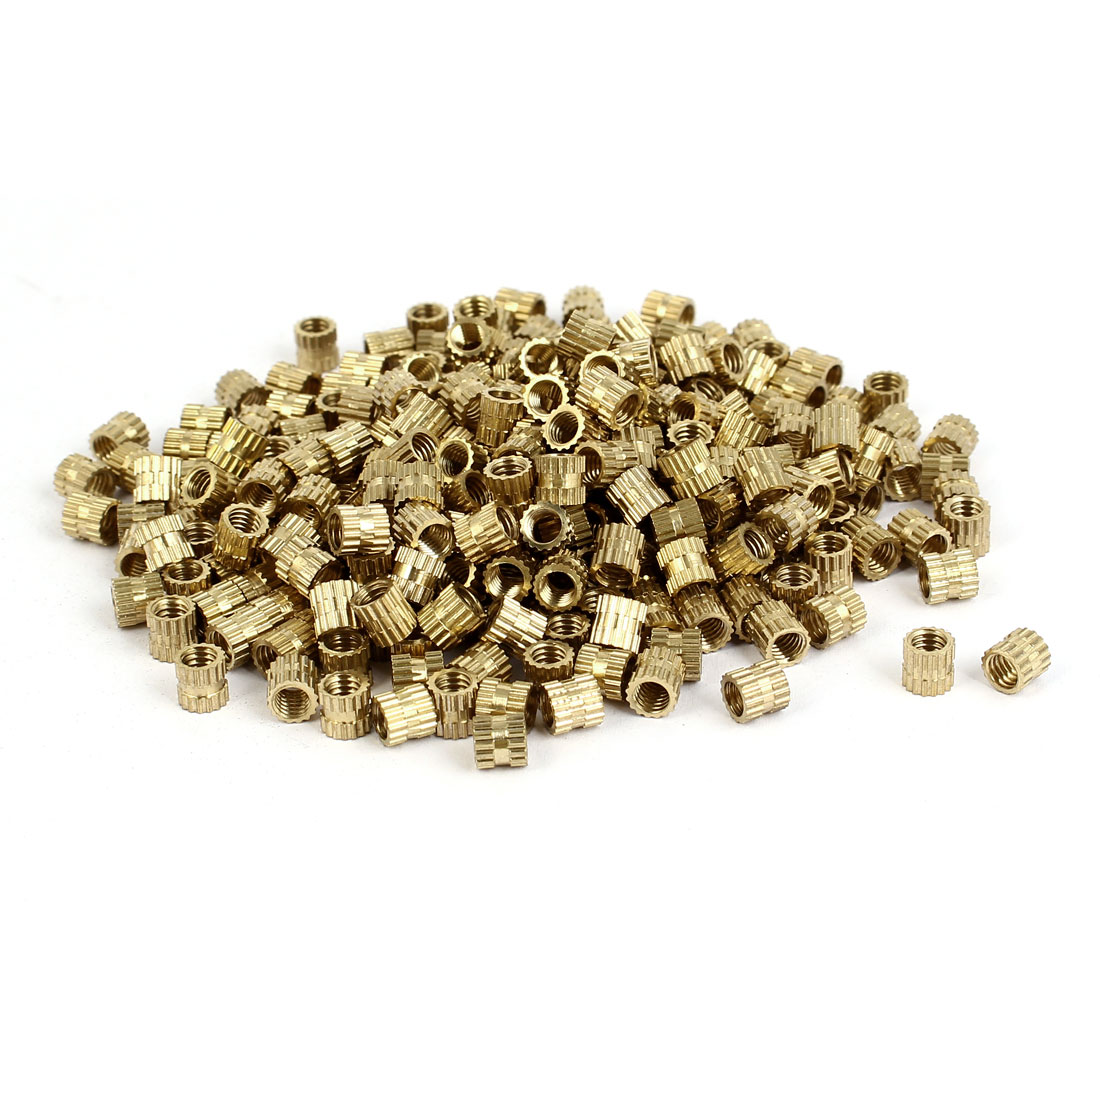 M4 x 5mm Brass Cylinder Knurled Threaded Round Insert Embedded Nuts 300PCS